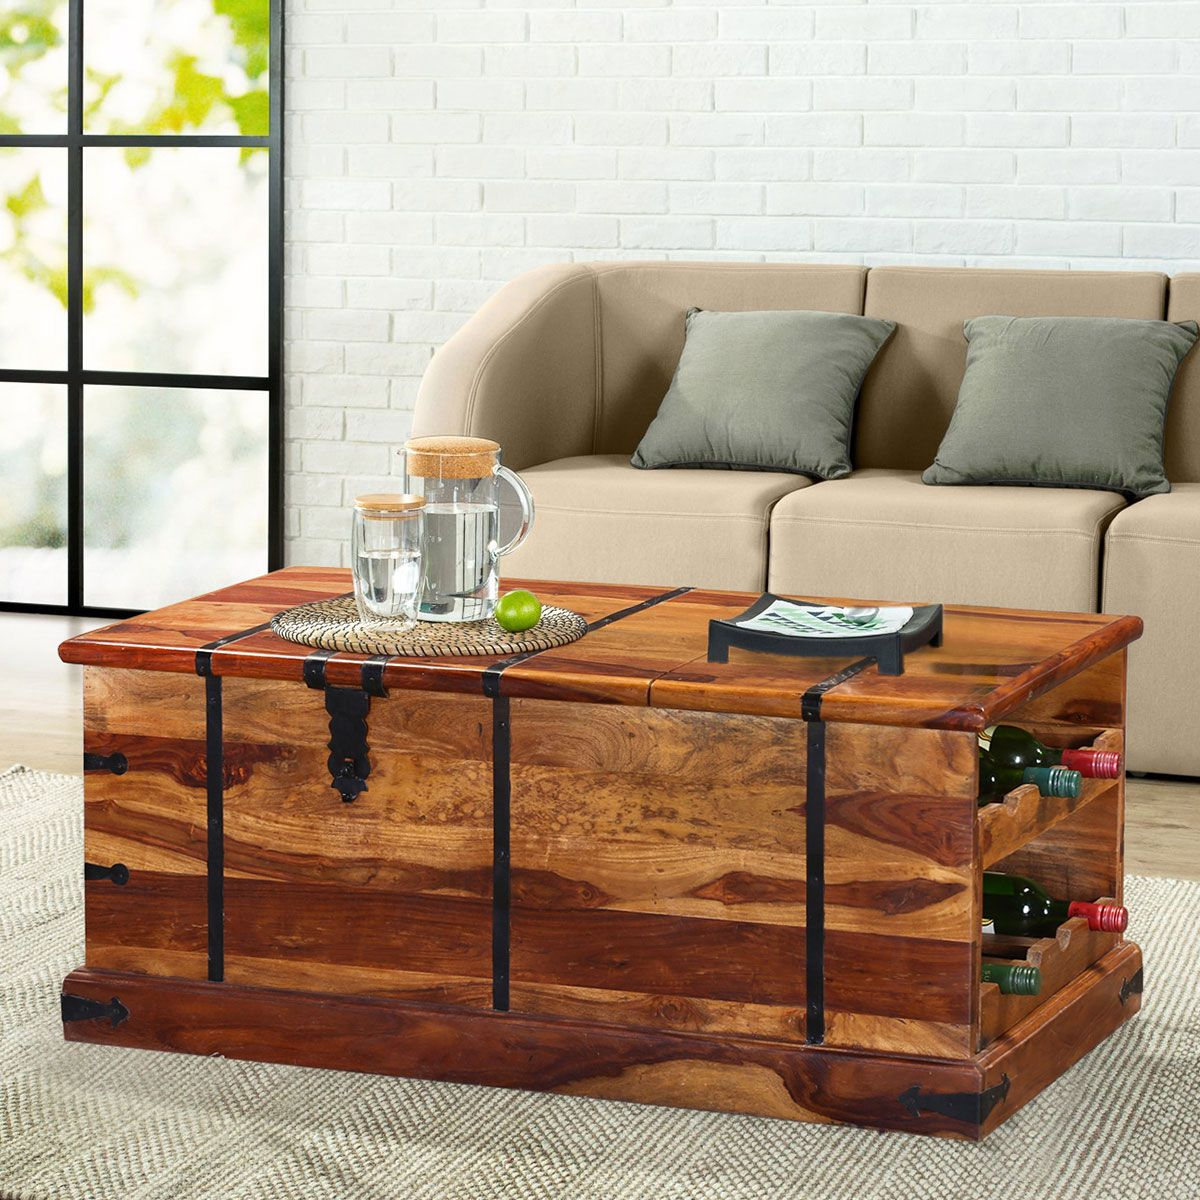 Sierra Living Concepts Wood Furniture Beautiful Furniture Pieces Gorgeous Furniture